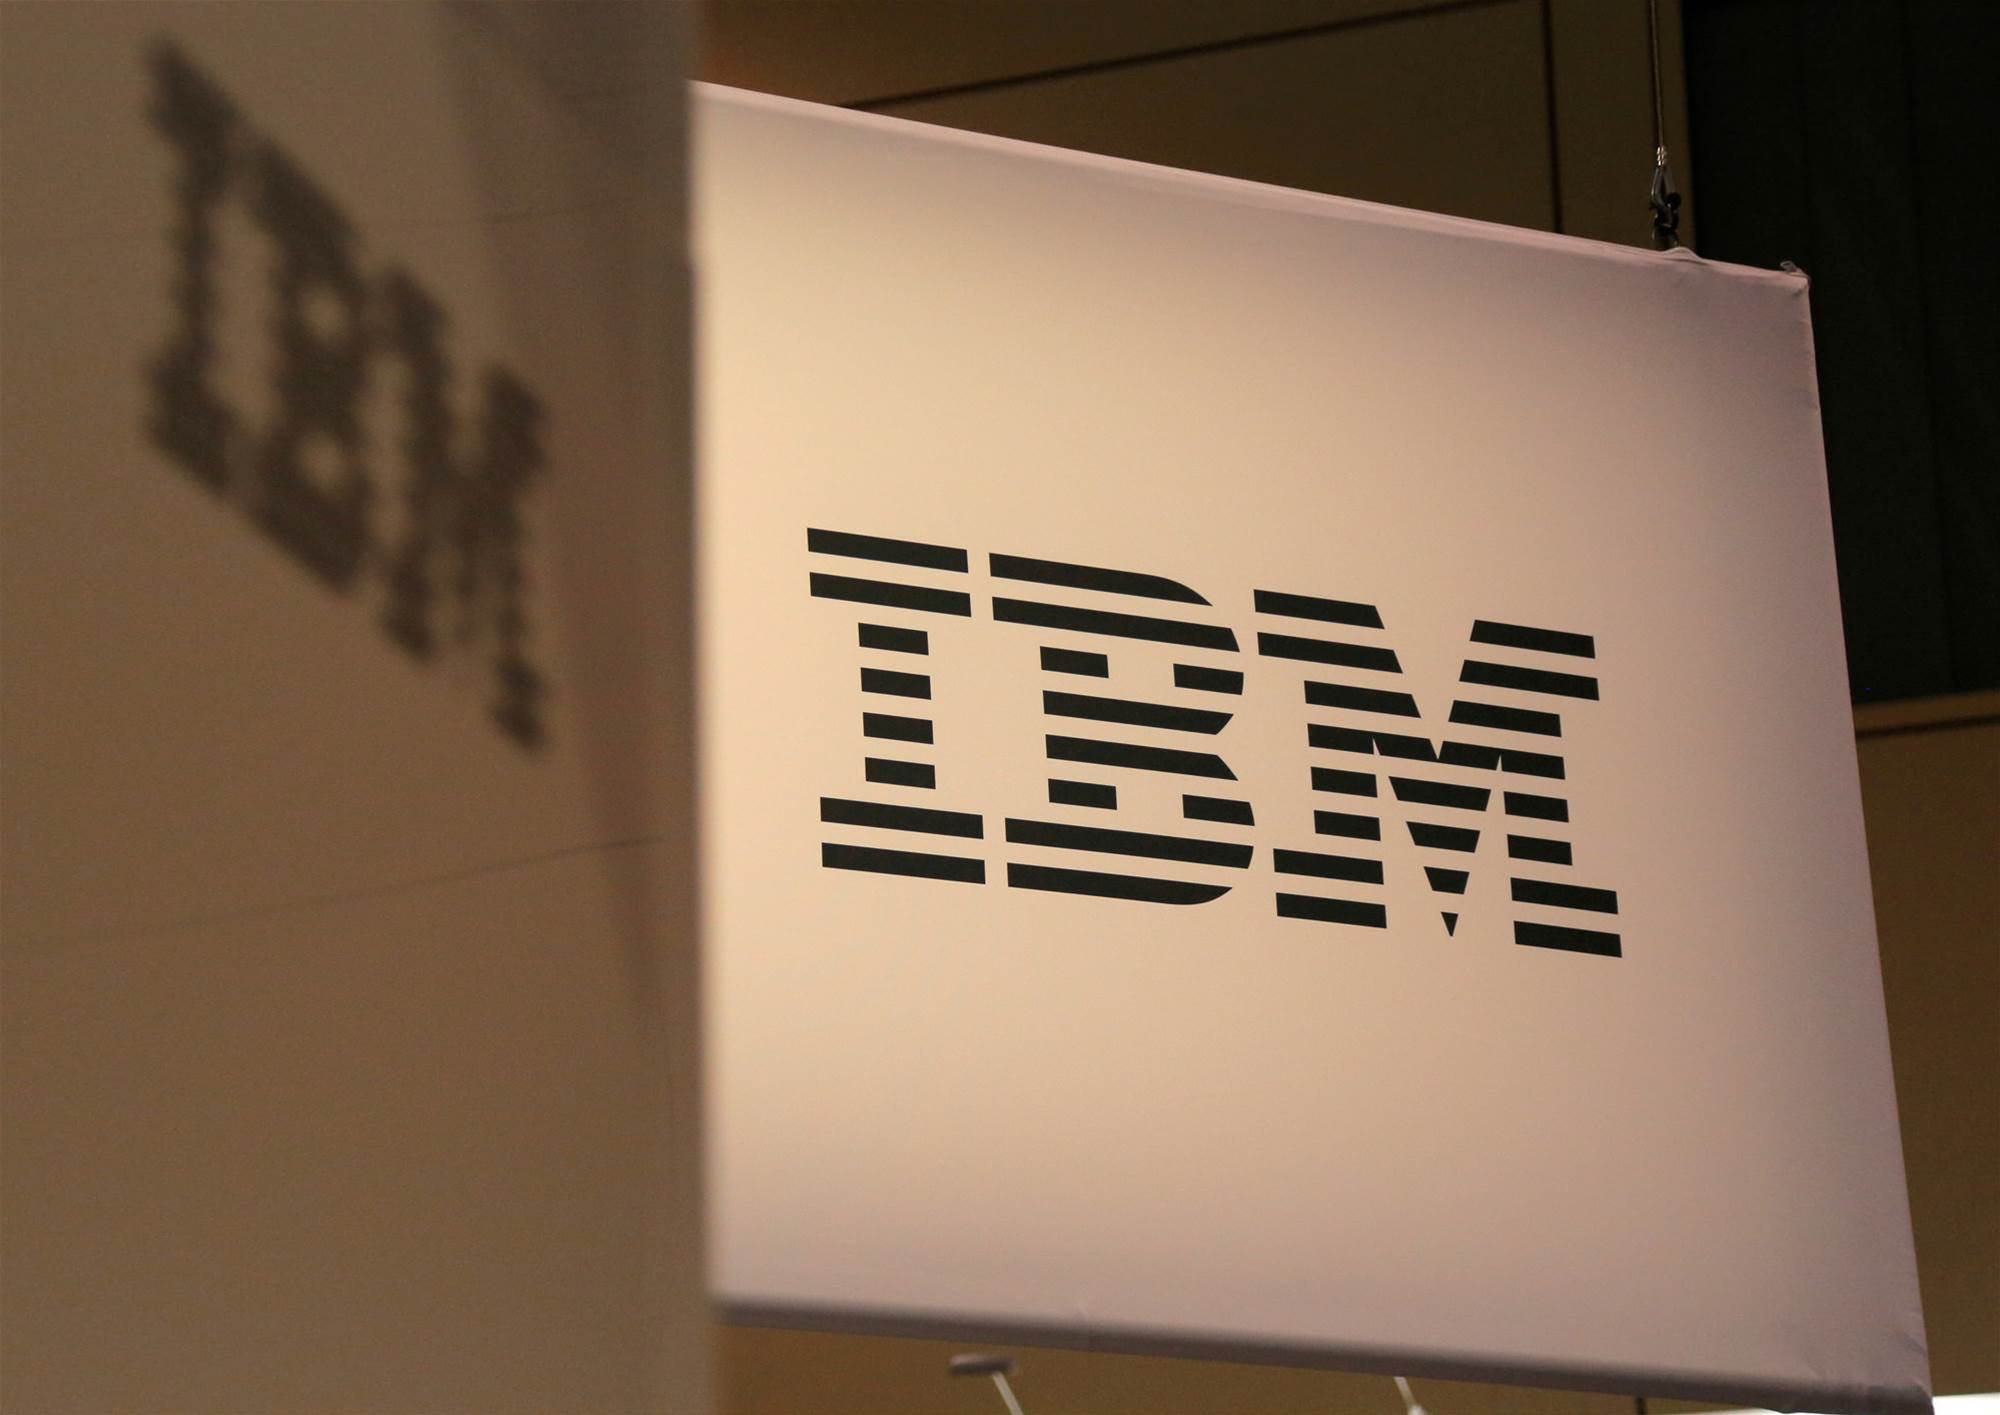 In 5G play, Vodafone and IBM link up cloud systems for business